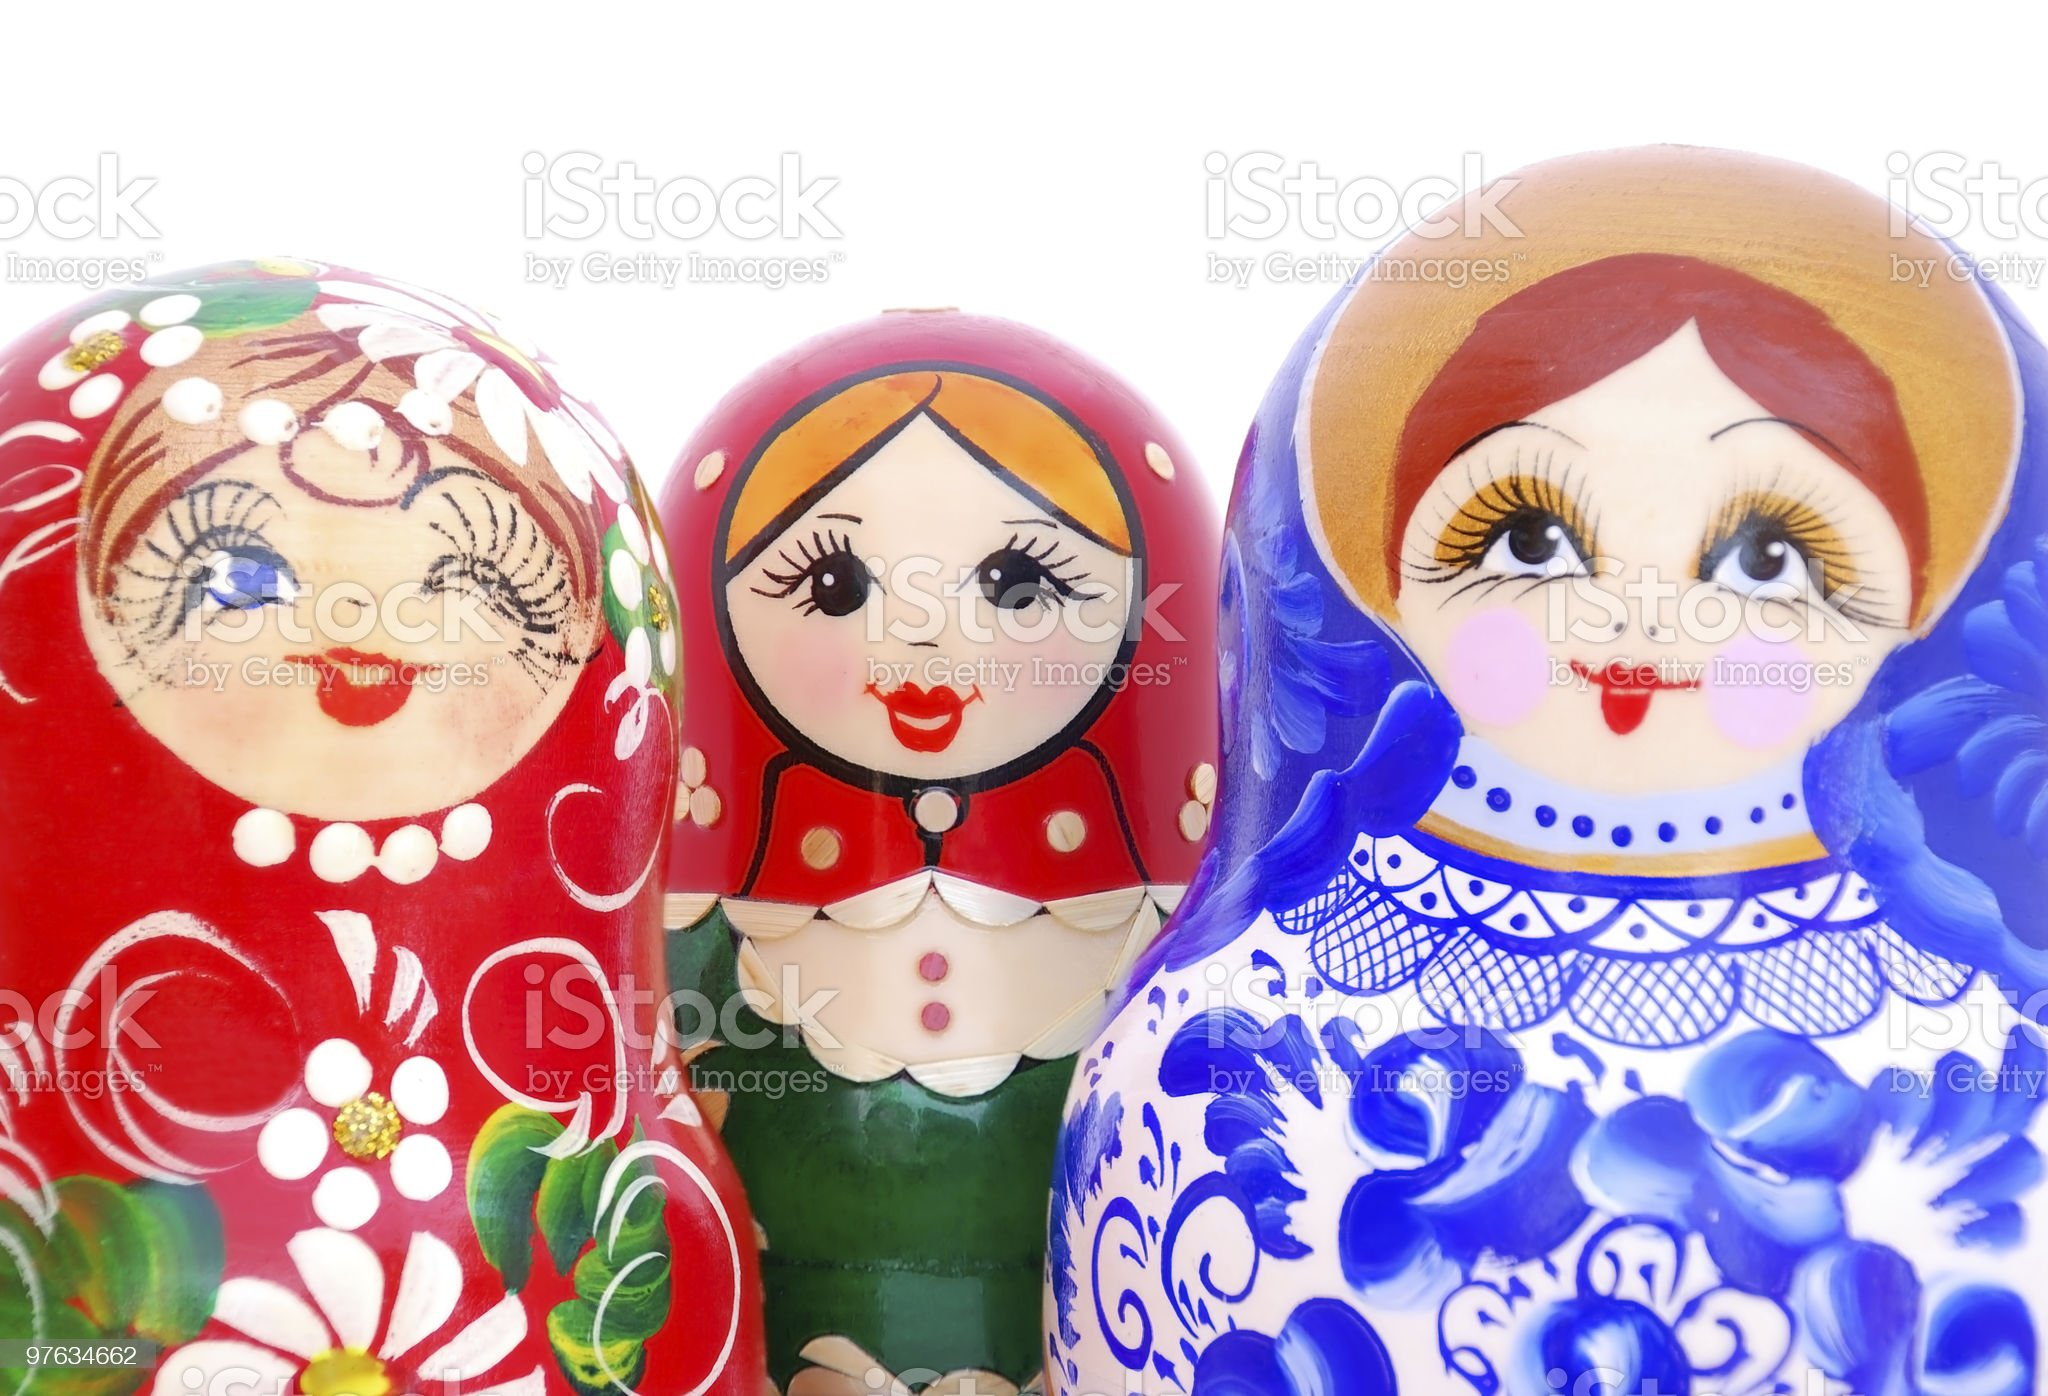 Smiling faces of Russian dolls royalty-free stock photo